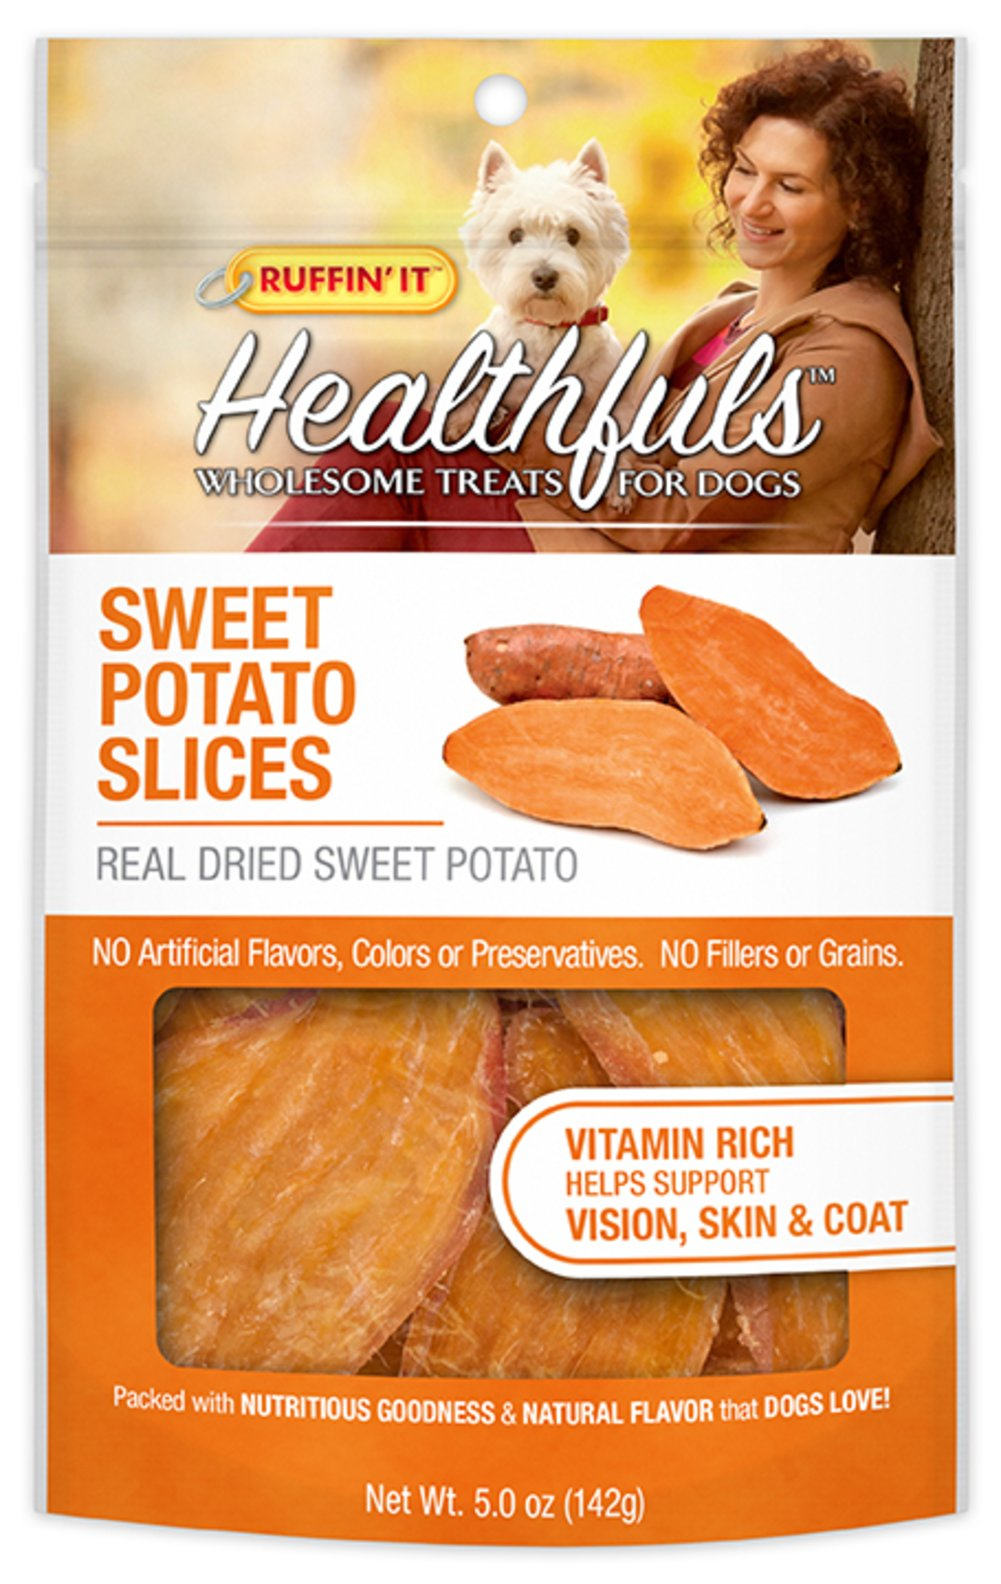 Healthfuls Wholesome Treats for Dogs Sweet Potato Slices <p><strong>From the Manufacturer's Label:</strong></p><p>Ruffin' It™ Healthfuls Sweet Potato Slices are packed with nutritious goodness and a natural sweet flavor that dogs love.  100% natural dried sweet potato slices. No artificial preservatives, no fillers, no grains and  no artificial flavors or colors.</p> 3.5 oz Bag  $4.99